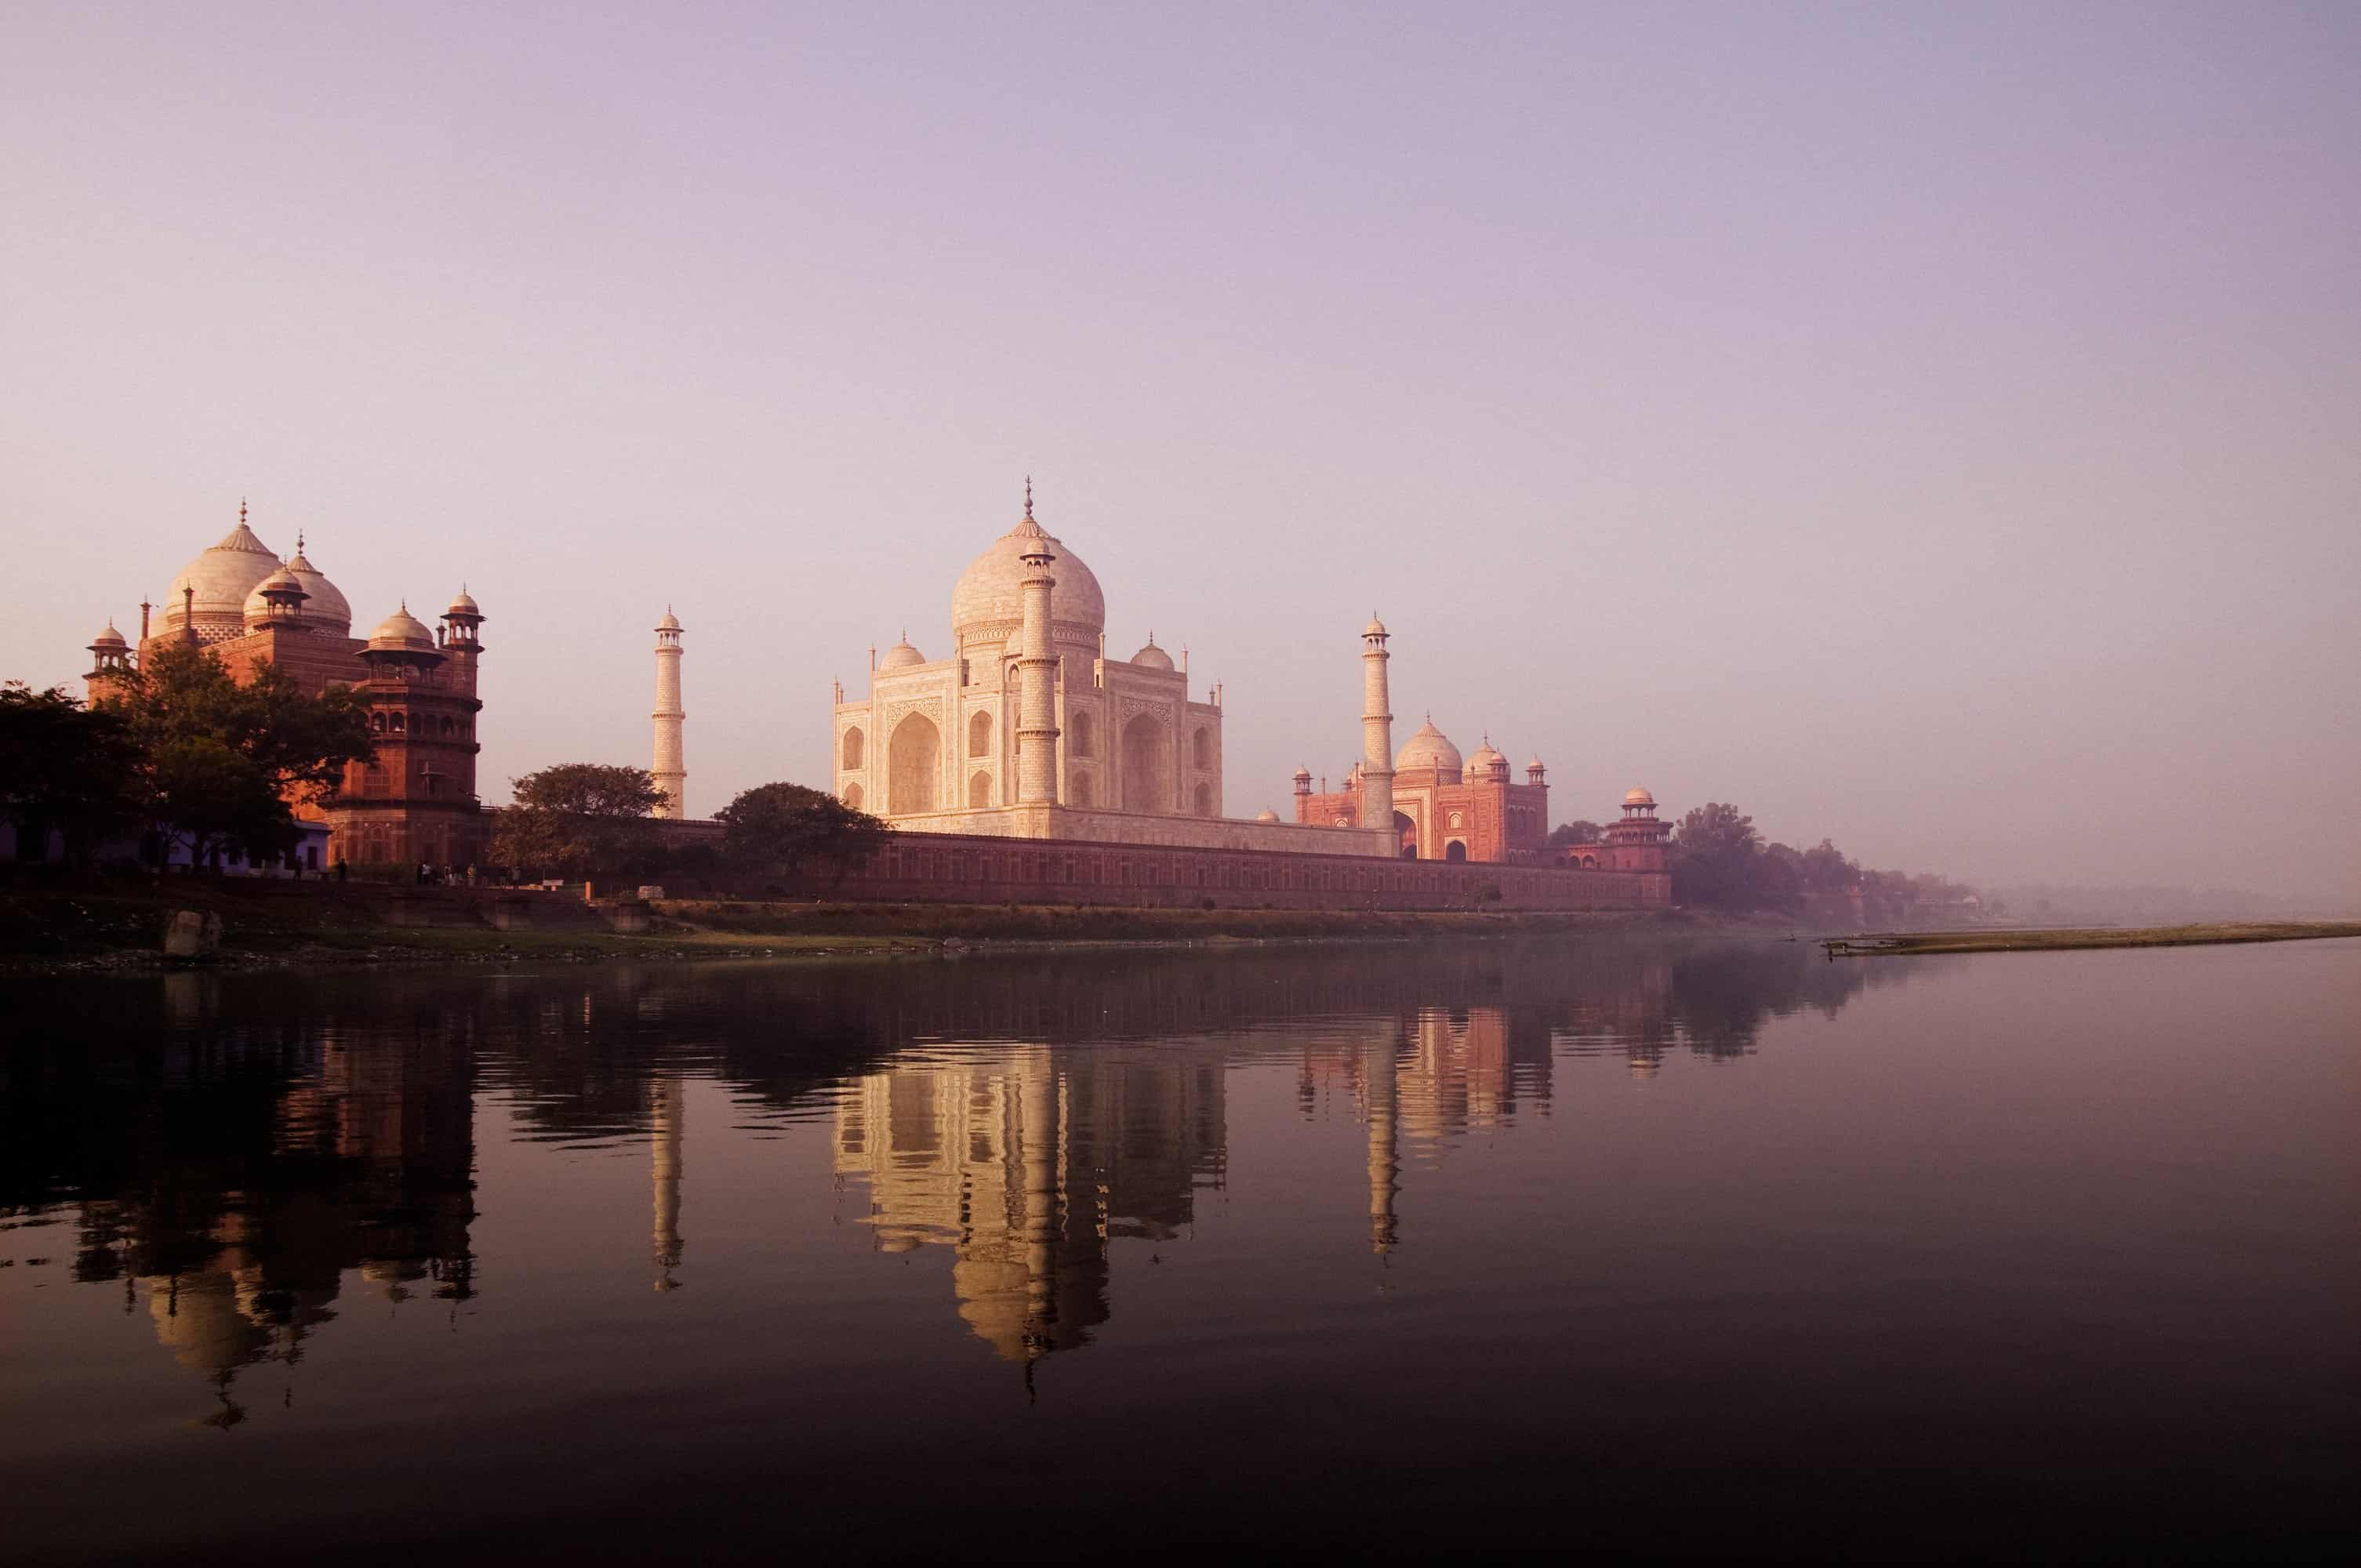 Beautiful view of Taj Mahal from the Yamuna River